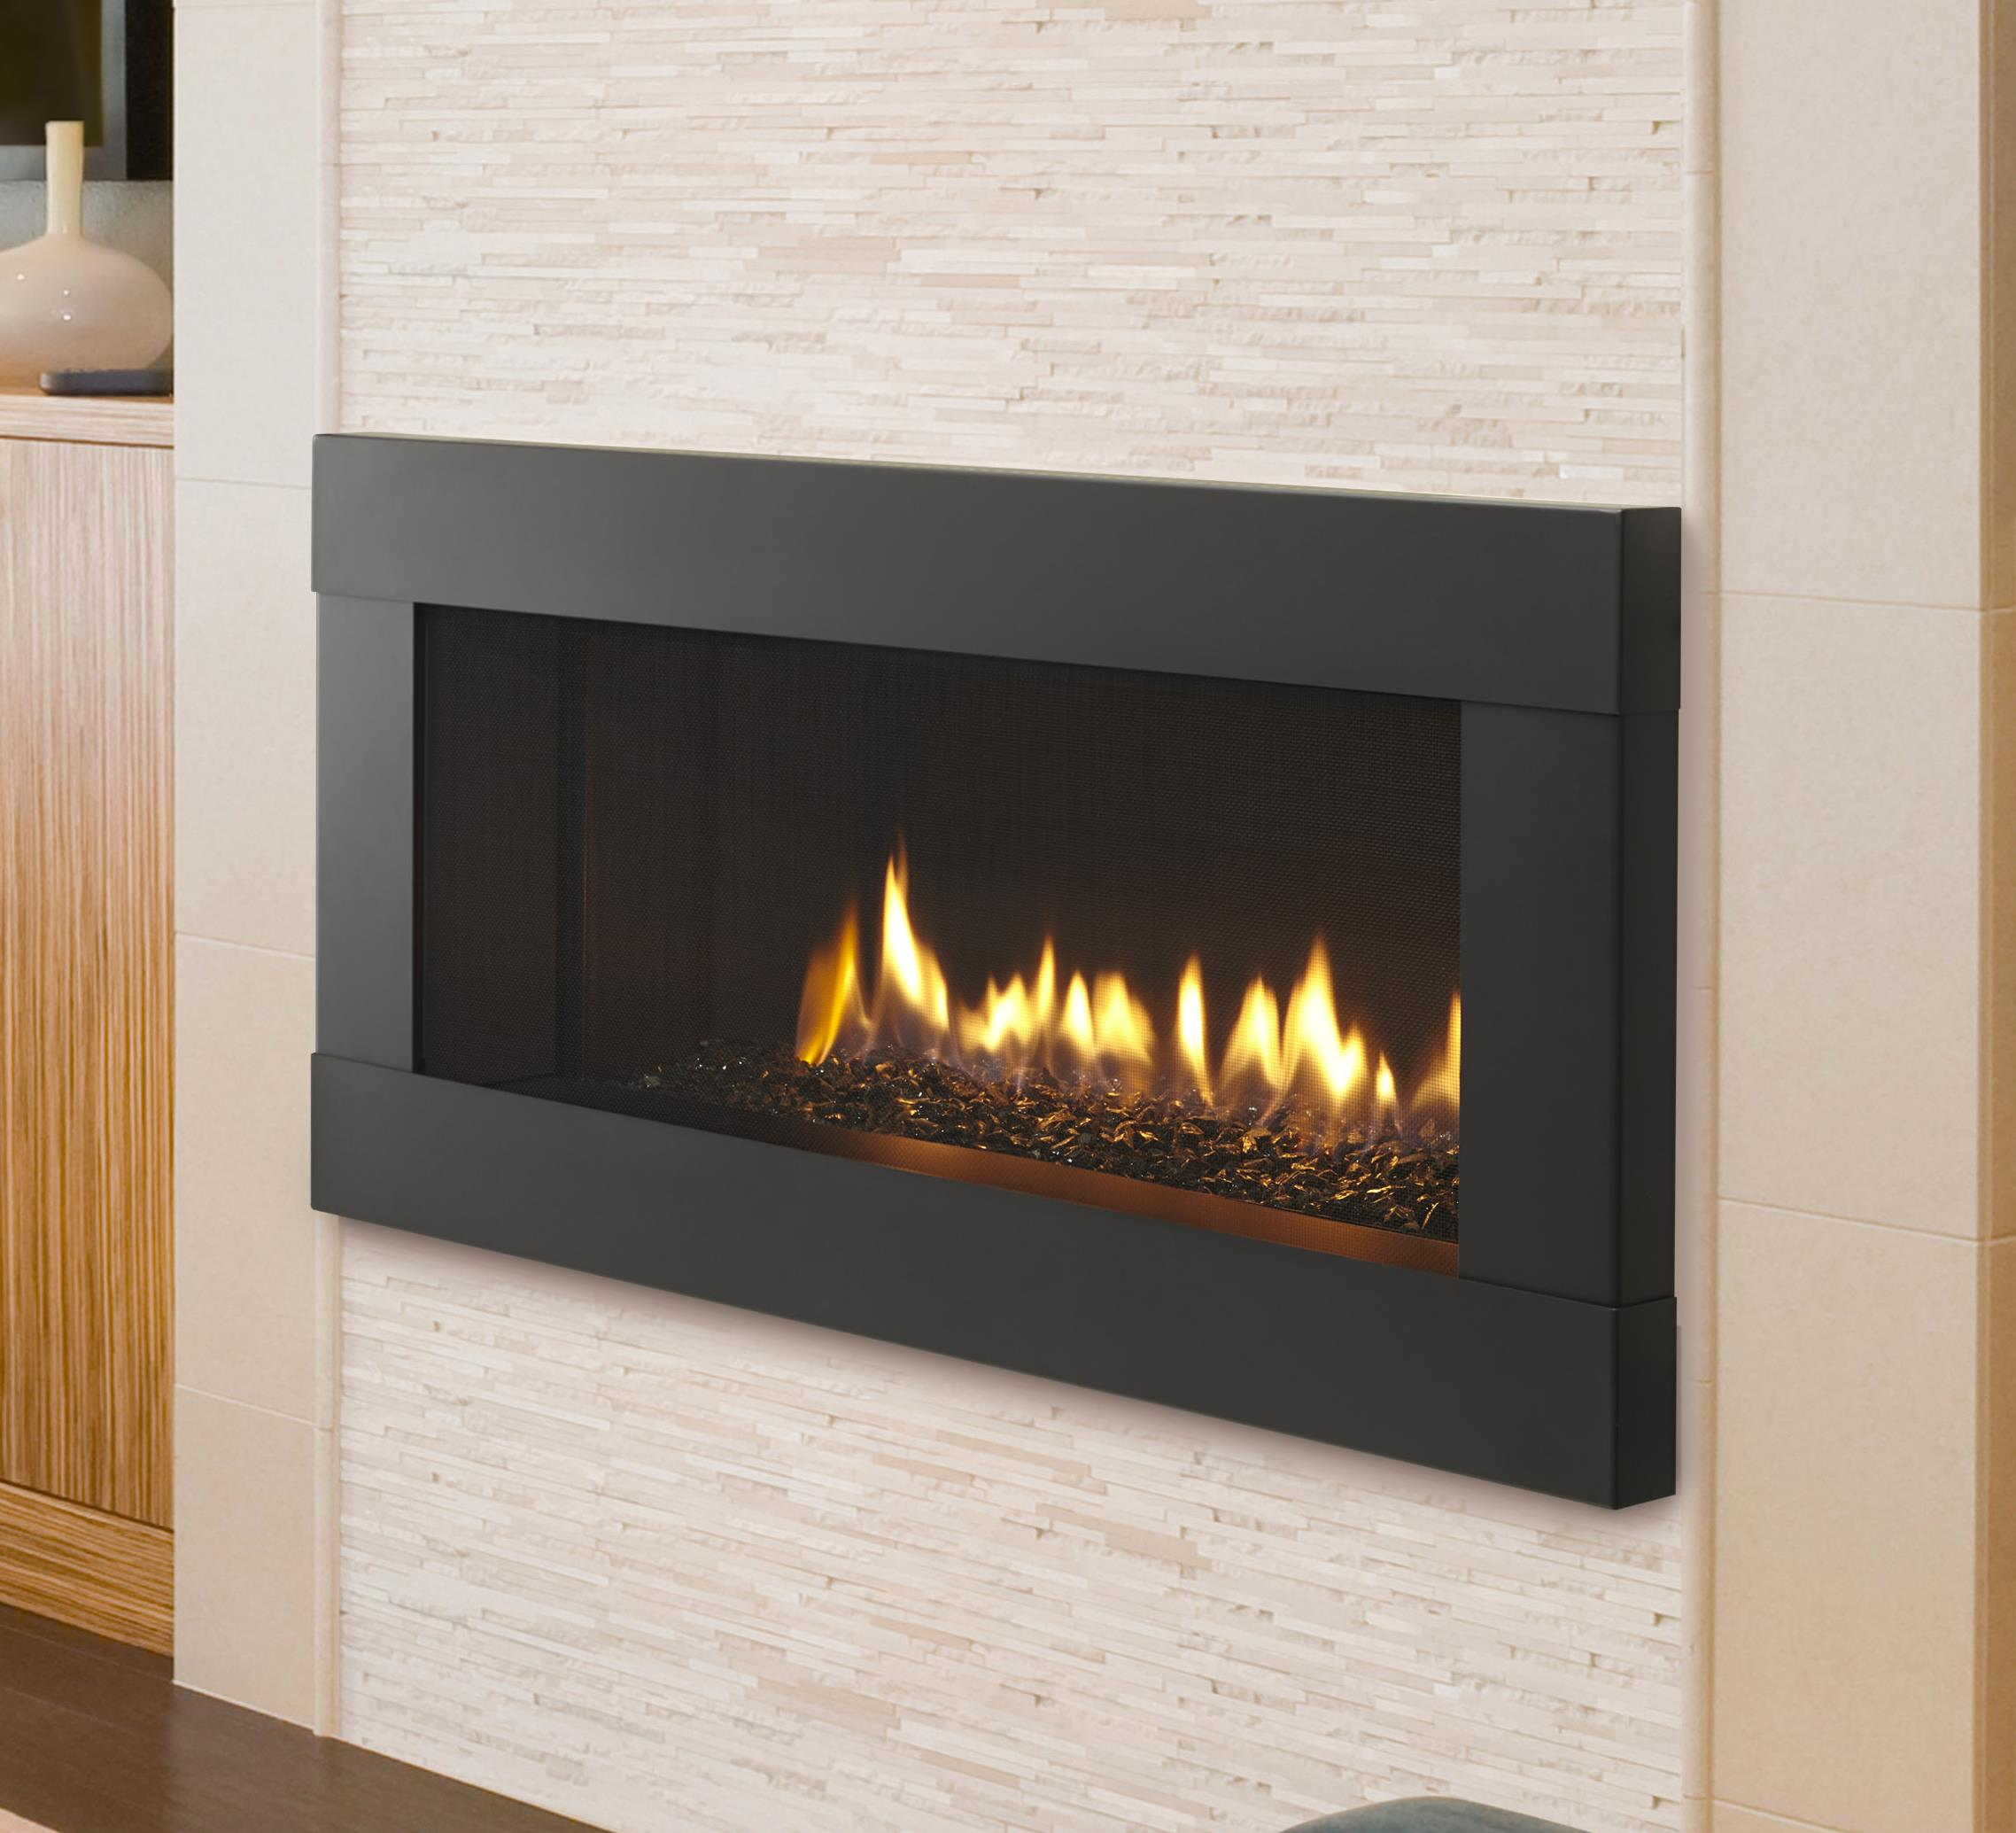 crave blue through gas trim kastle see fireplace with glass clean media and face fireplaces inch heatilator